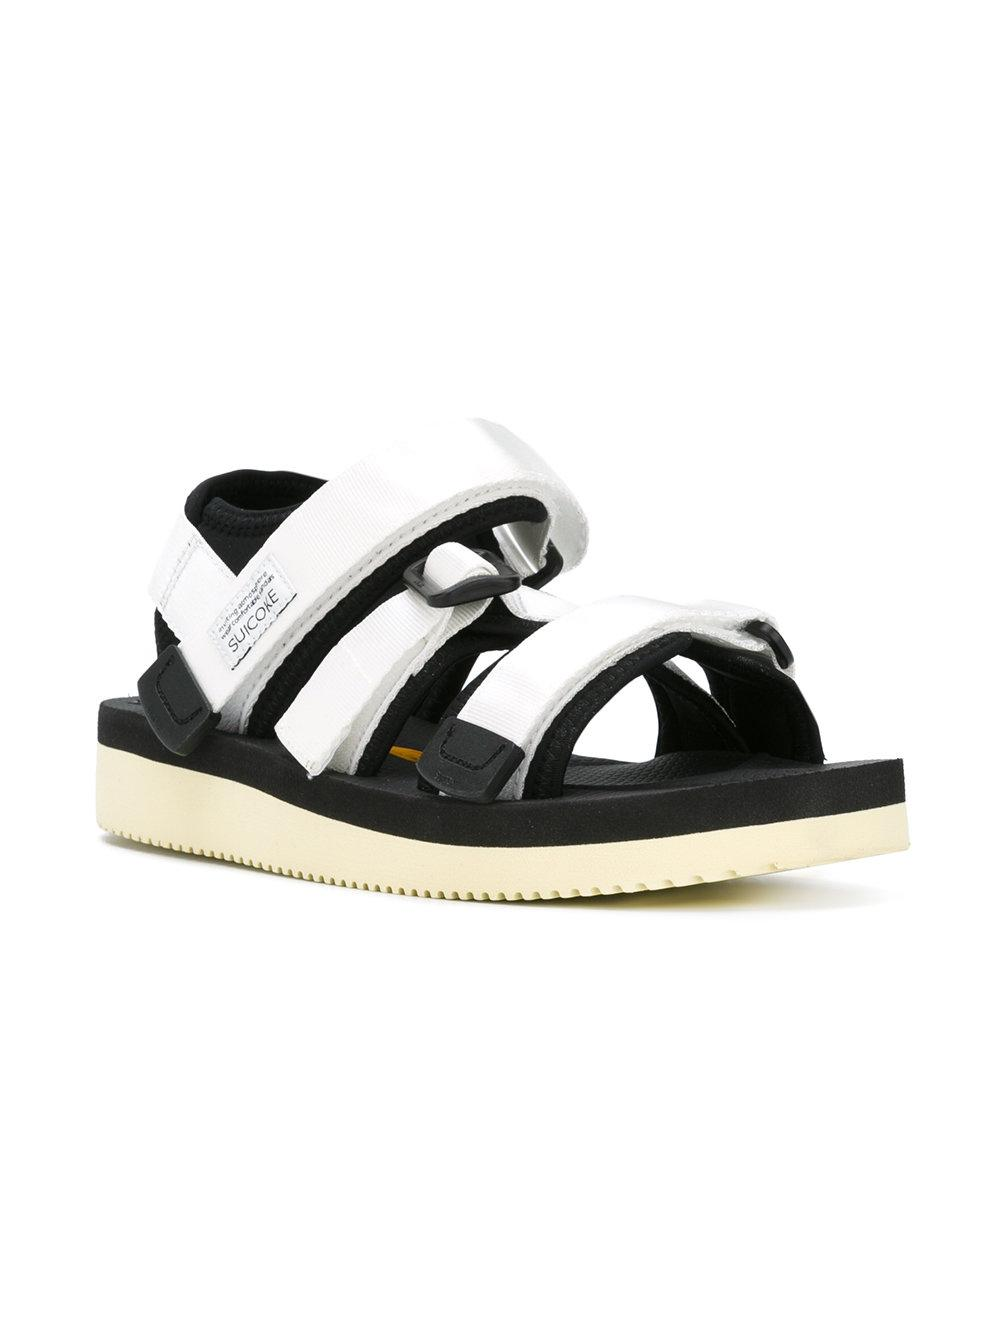 Suicoke Kisee Sandals In White Lyst